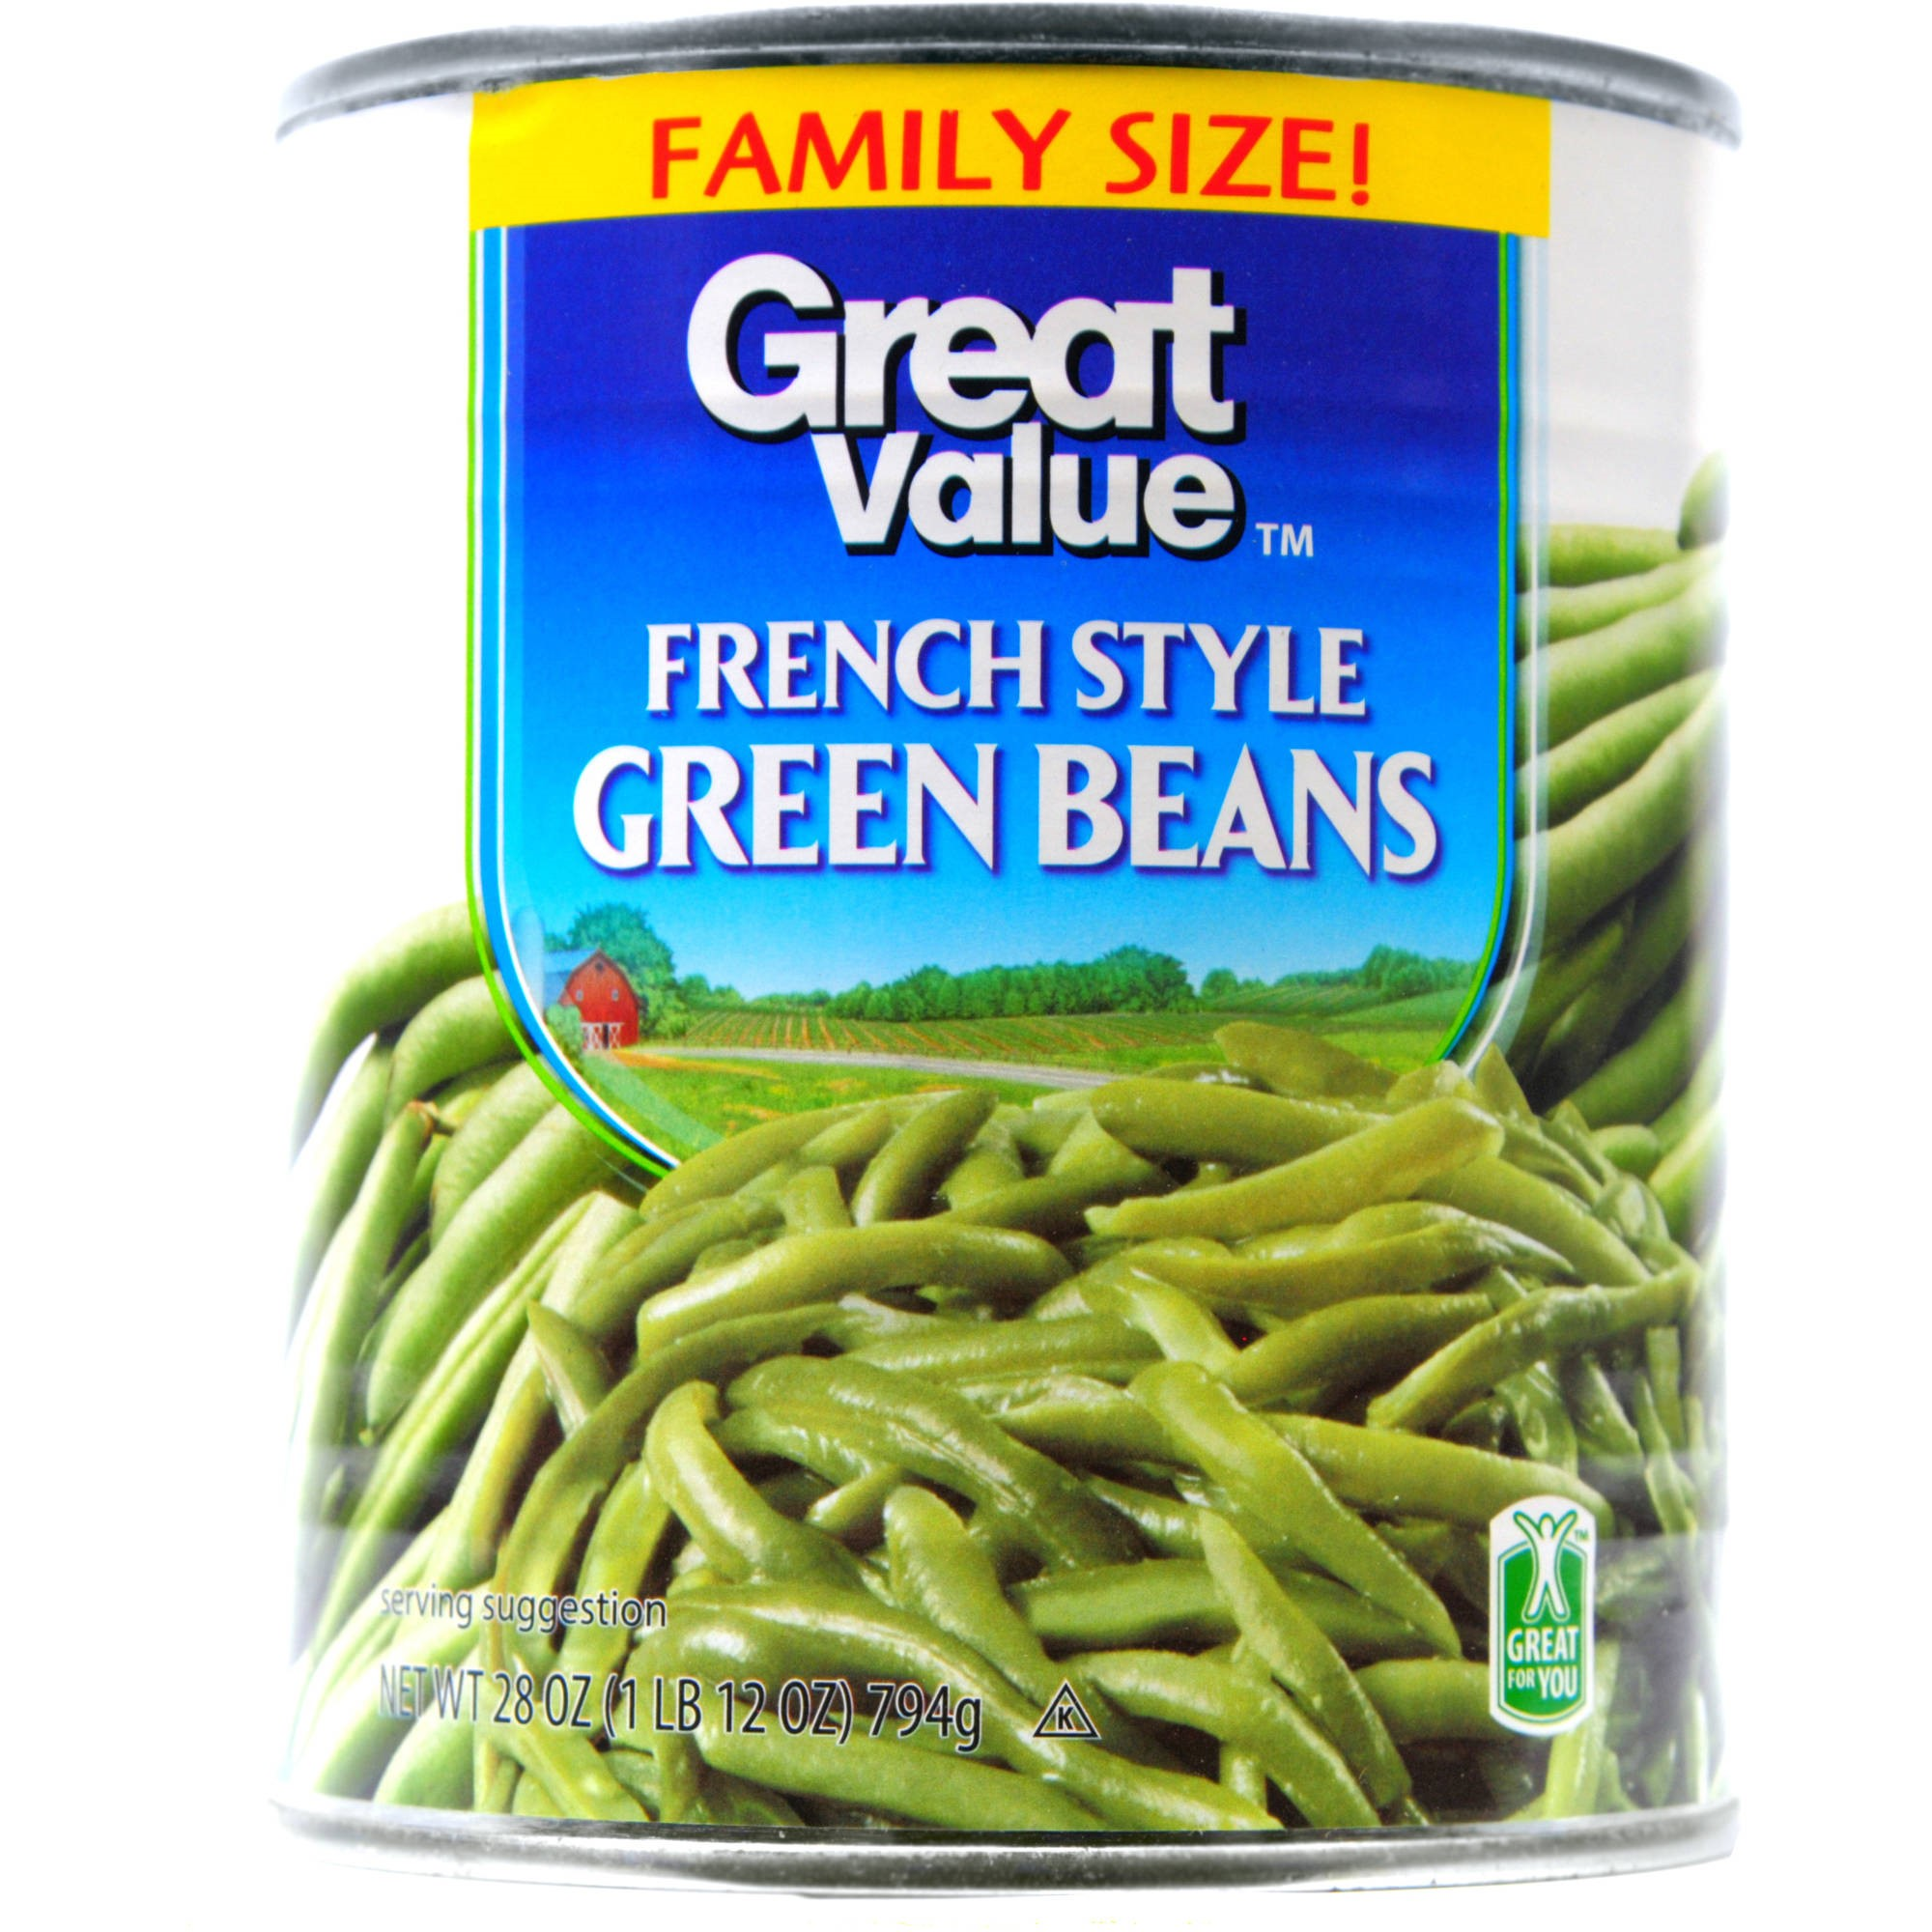 Great Value French Style Green Beans, 28 Oz